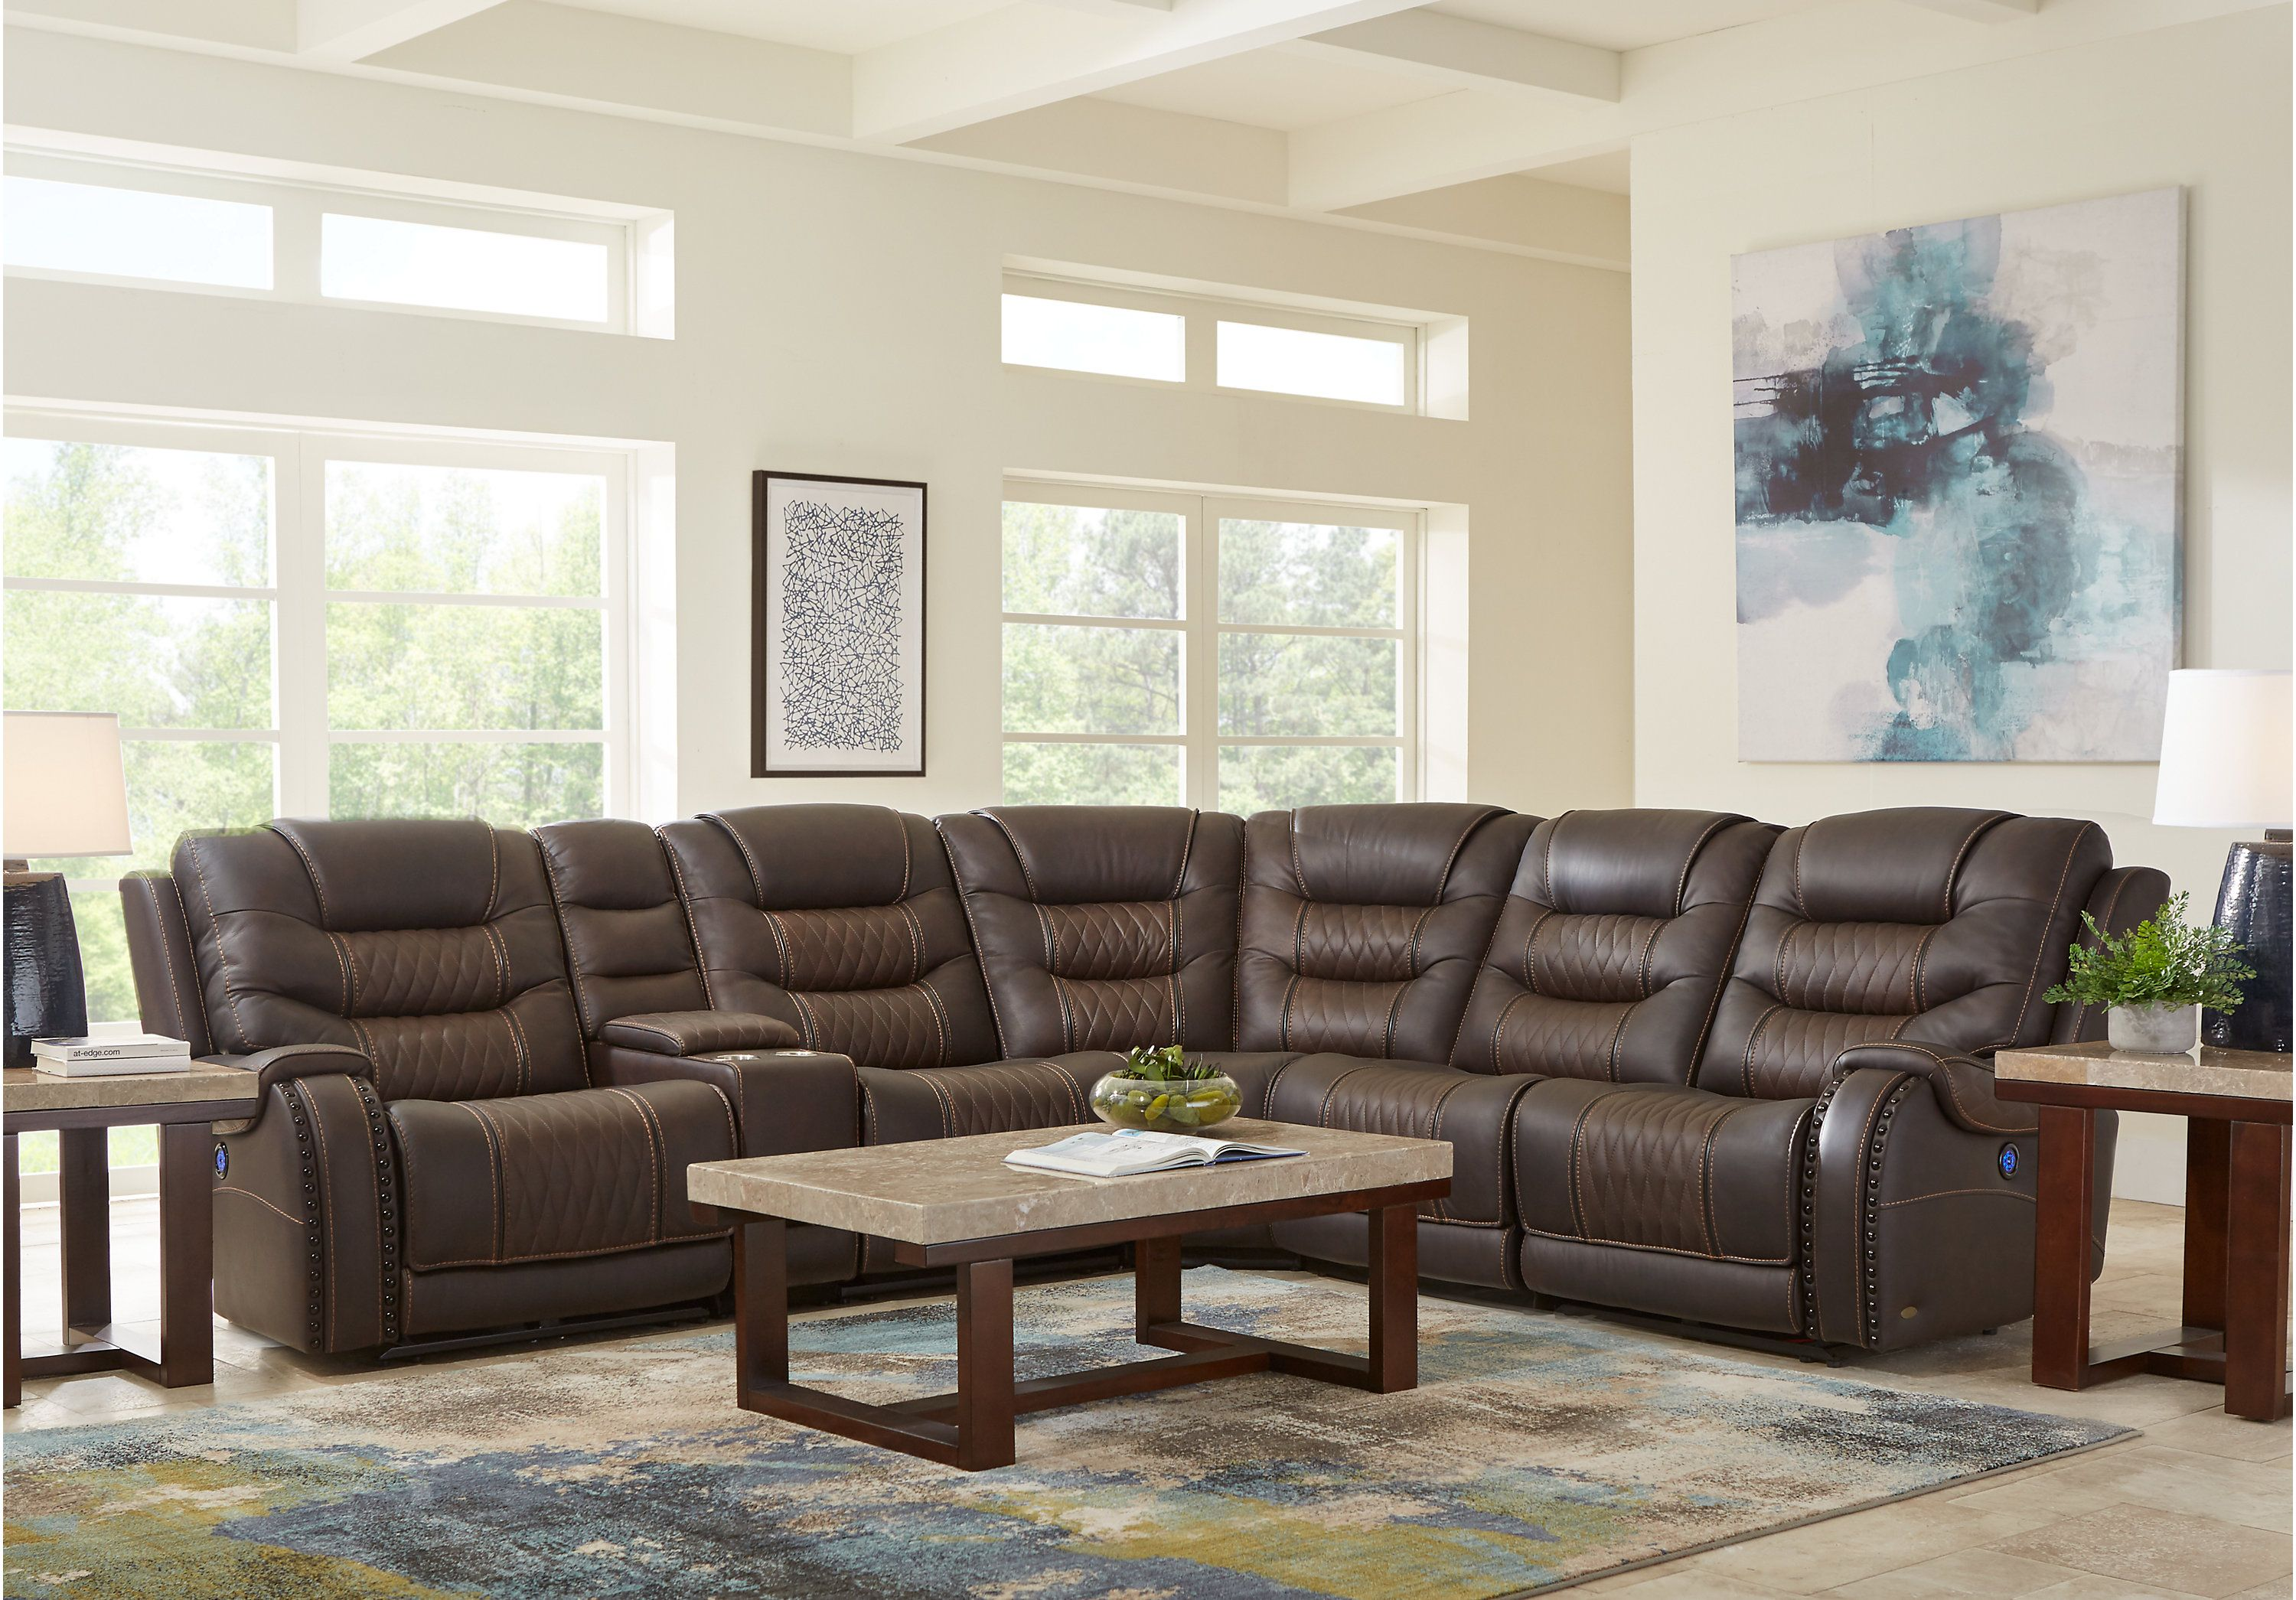 Surprising Eric Church Highway To Home Headliner Brown Leather 6 Pc Uwap Interior Chair Design Uwaporg